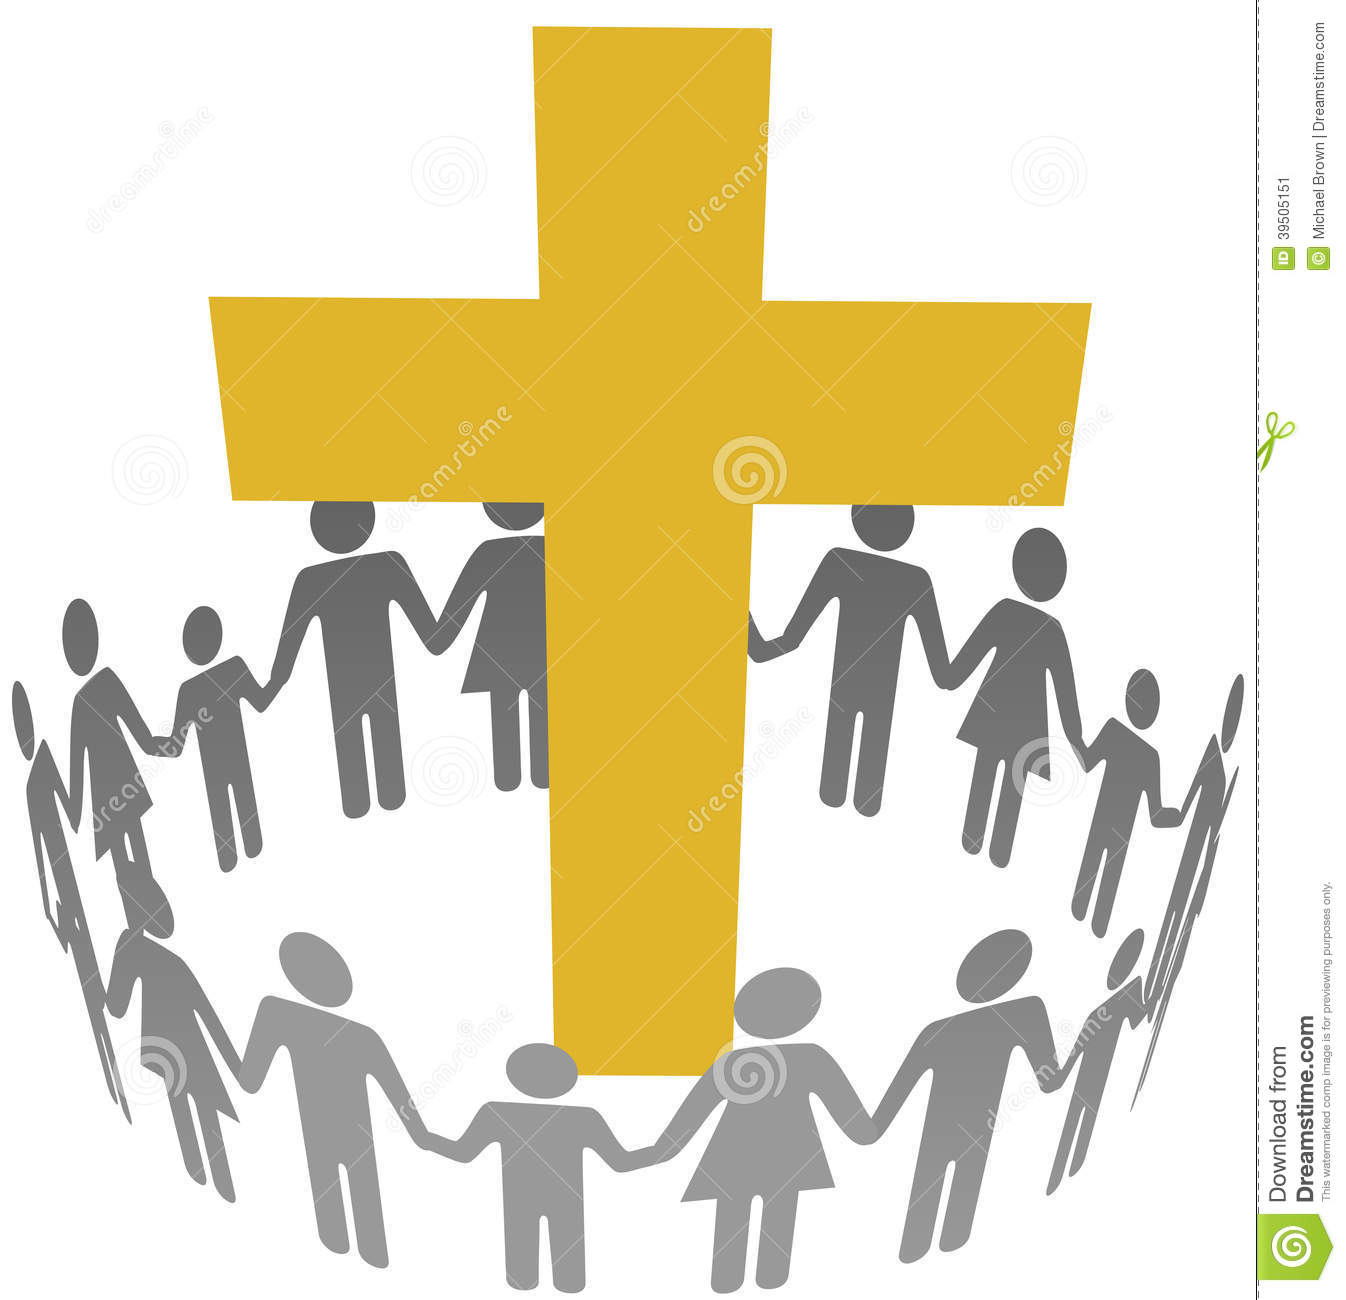 Family Circle Christian Community Cross Stock Vector - Image: 39505151